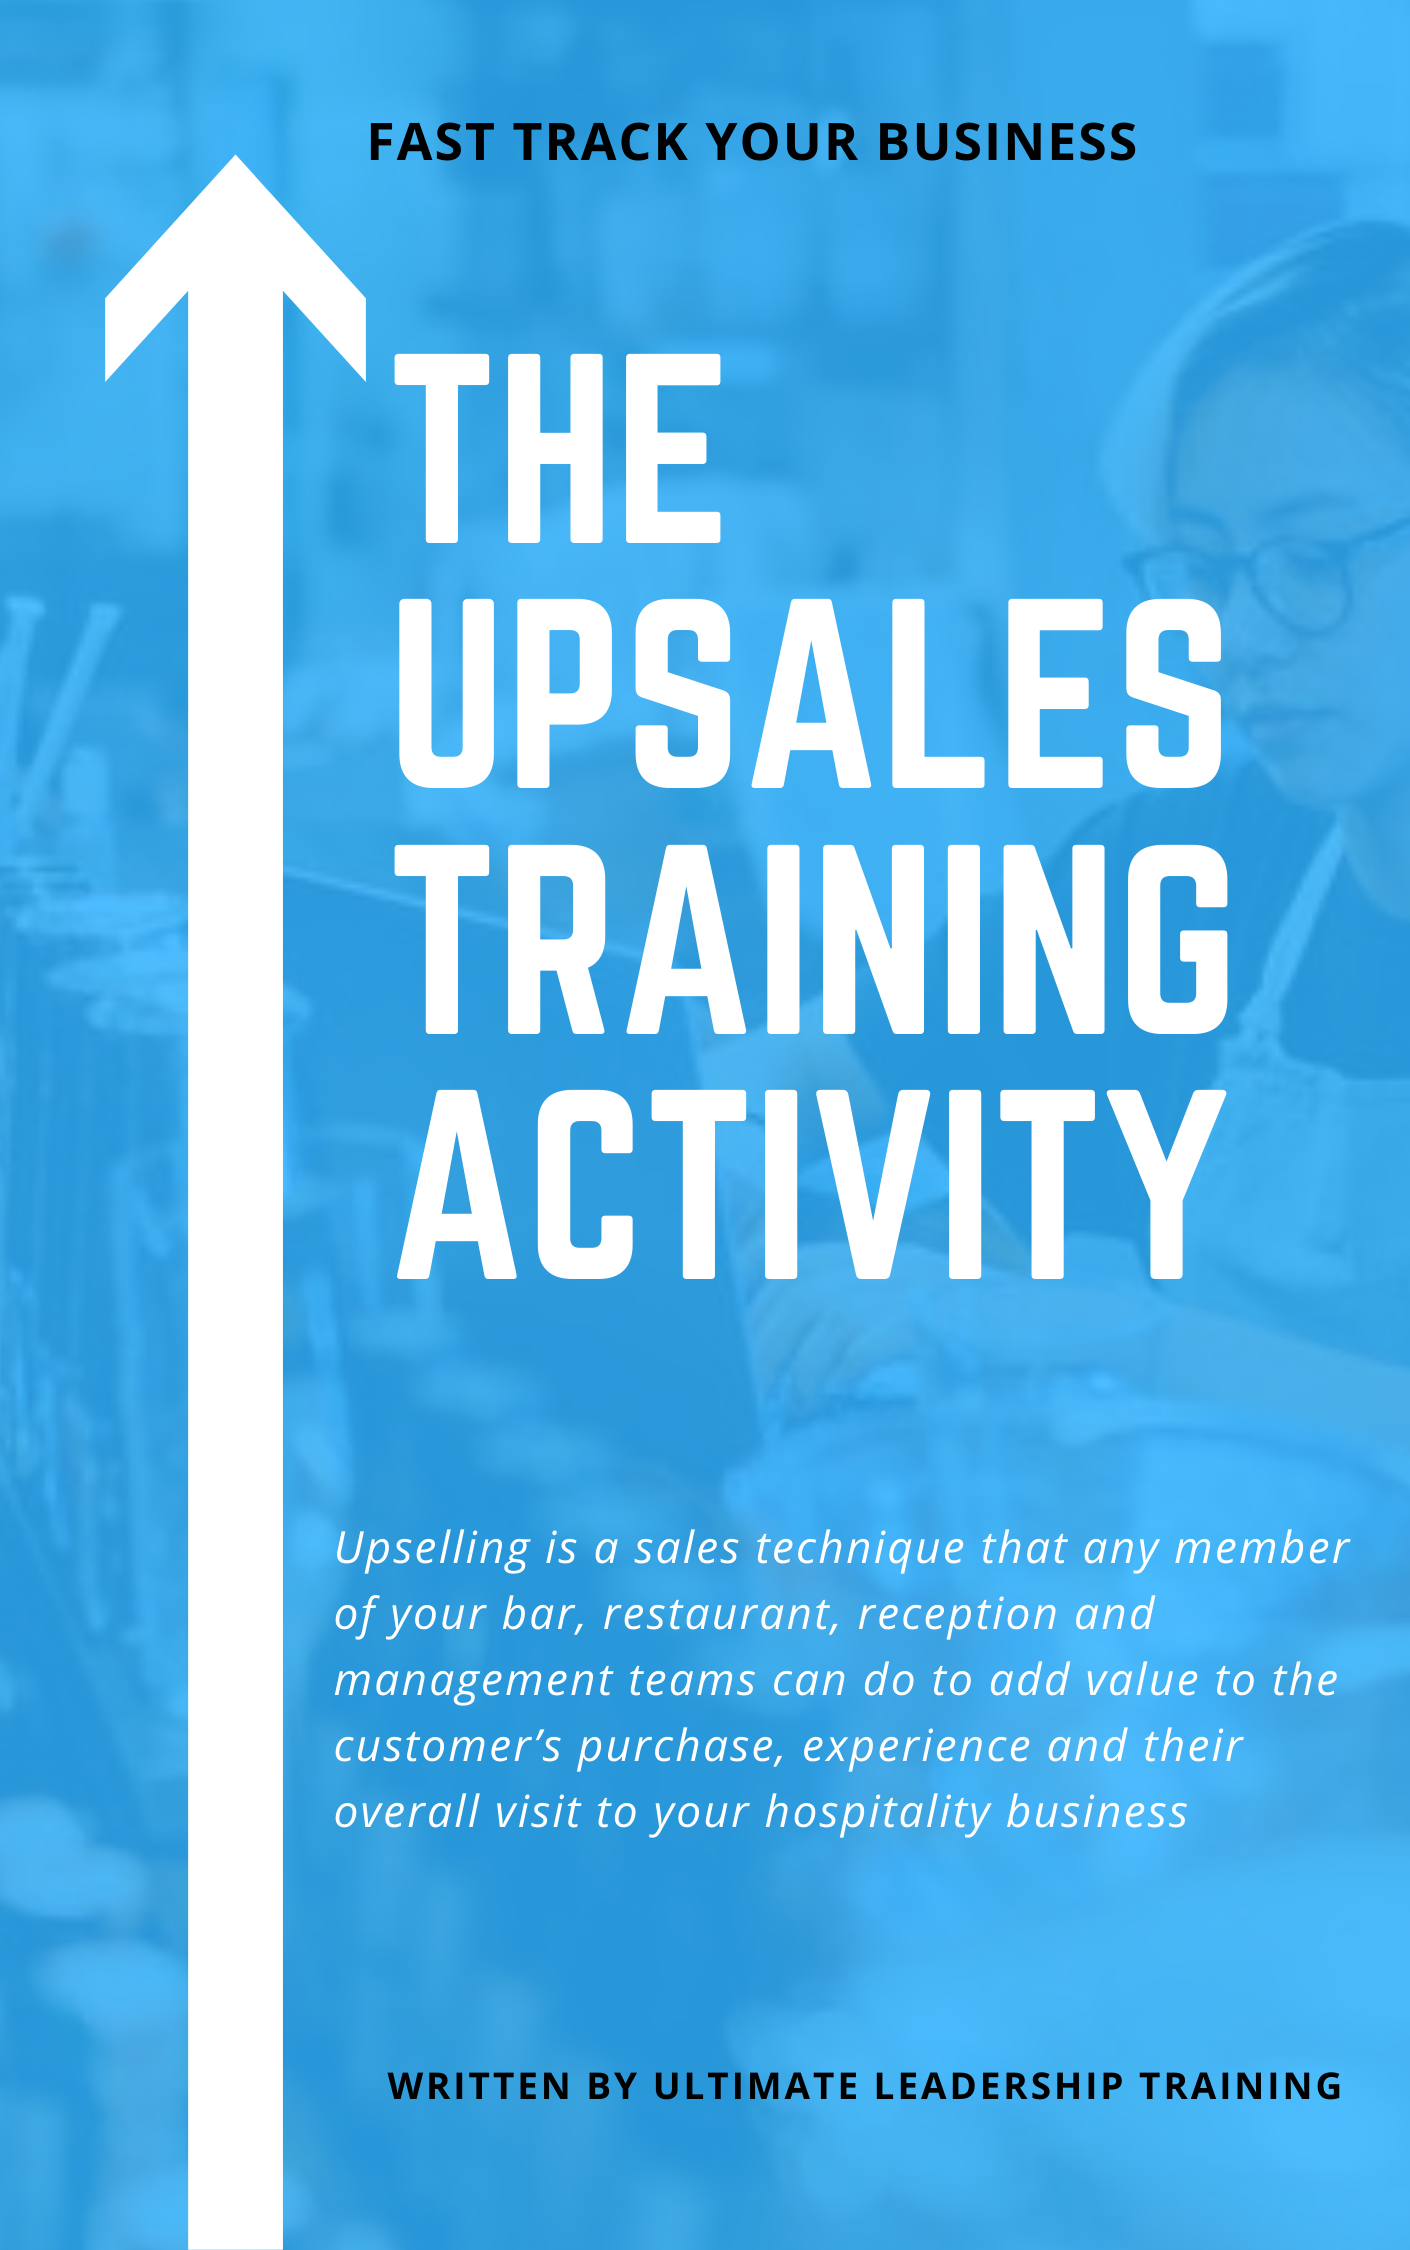 Upselling and upsales training activity to improve your pub restaurant or hotel